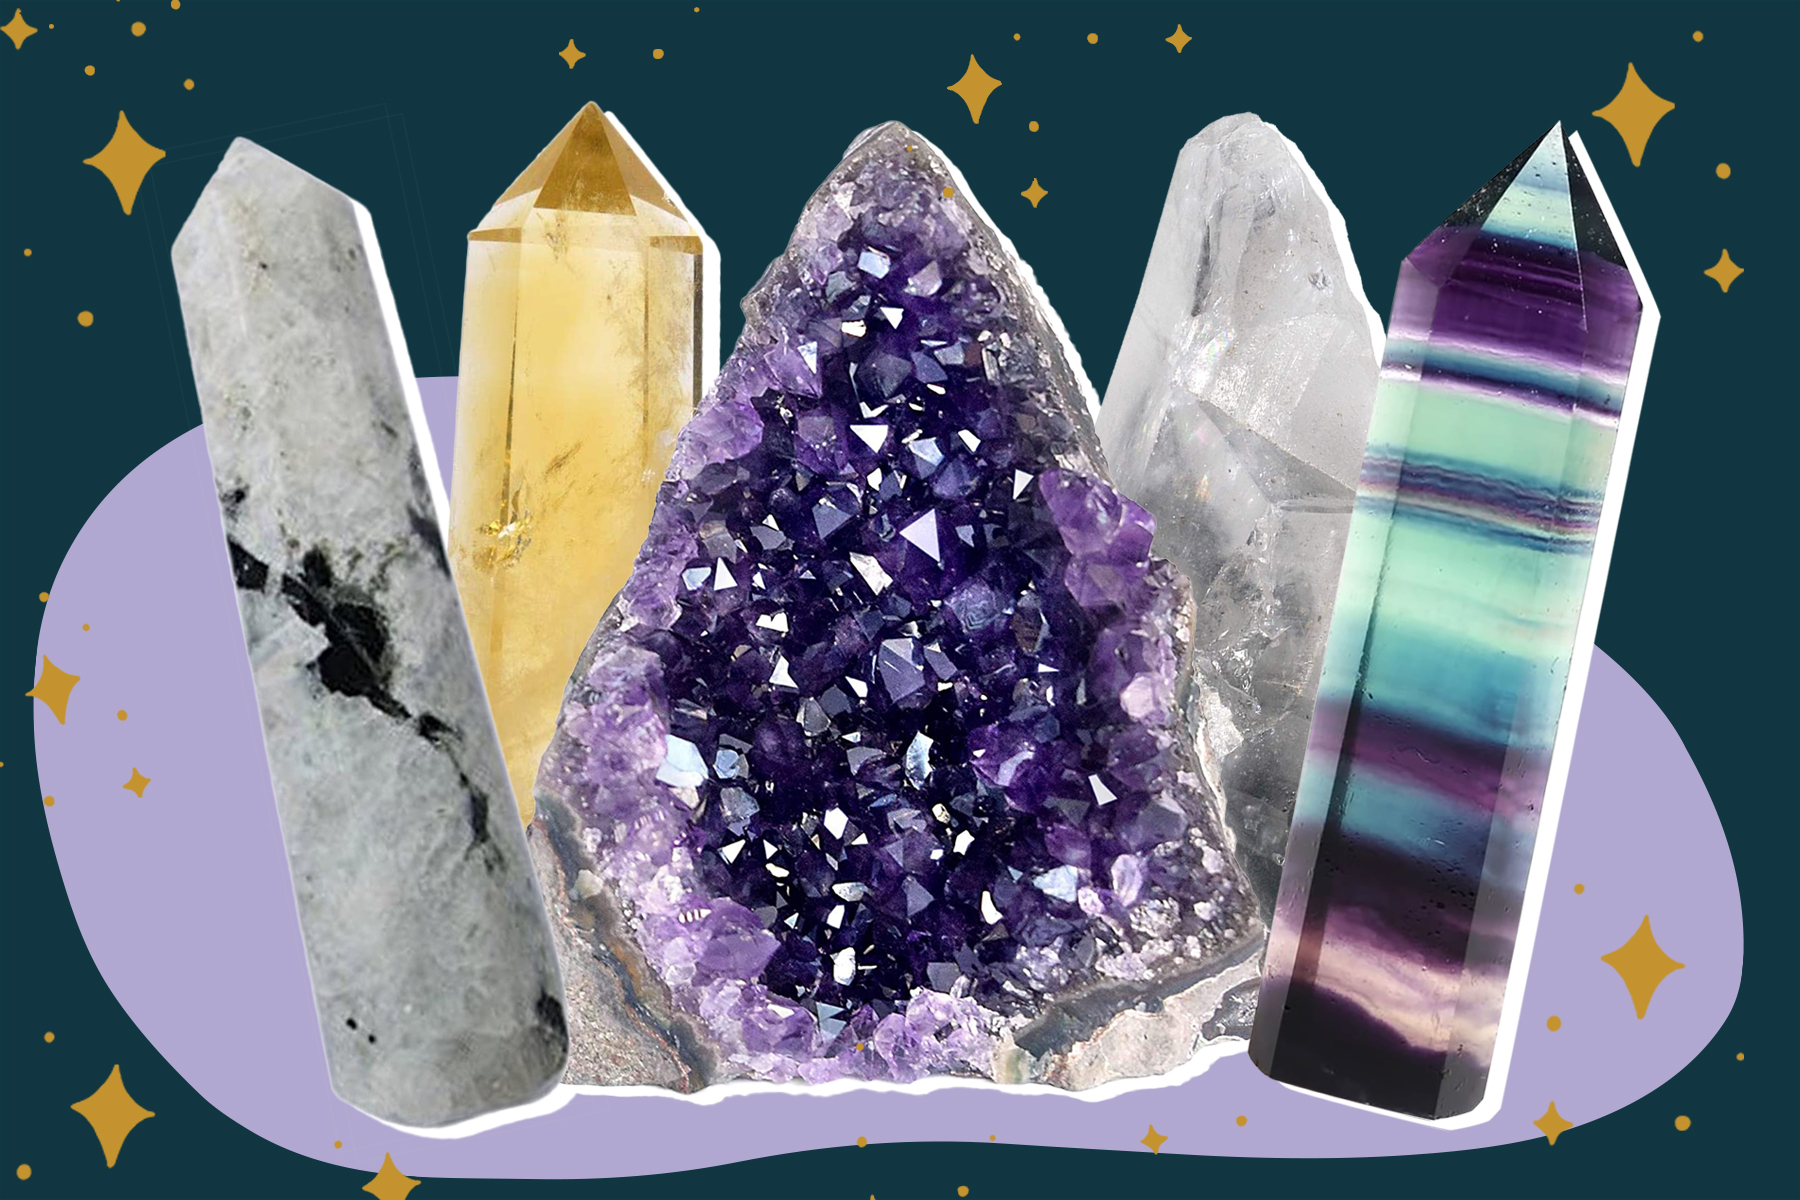 crystals based on your zodiac sign